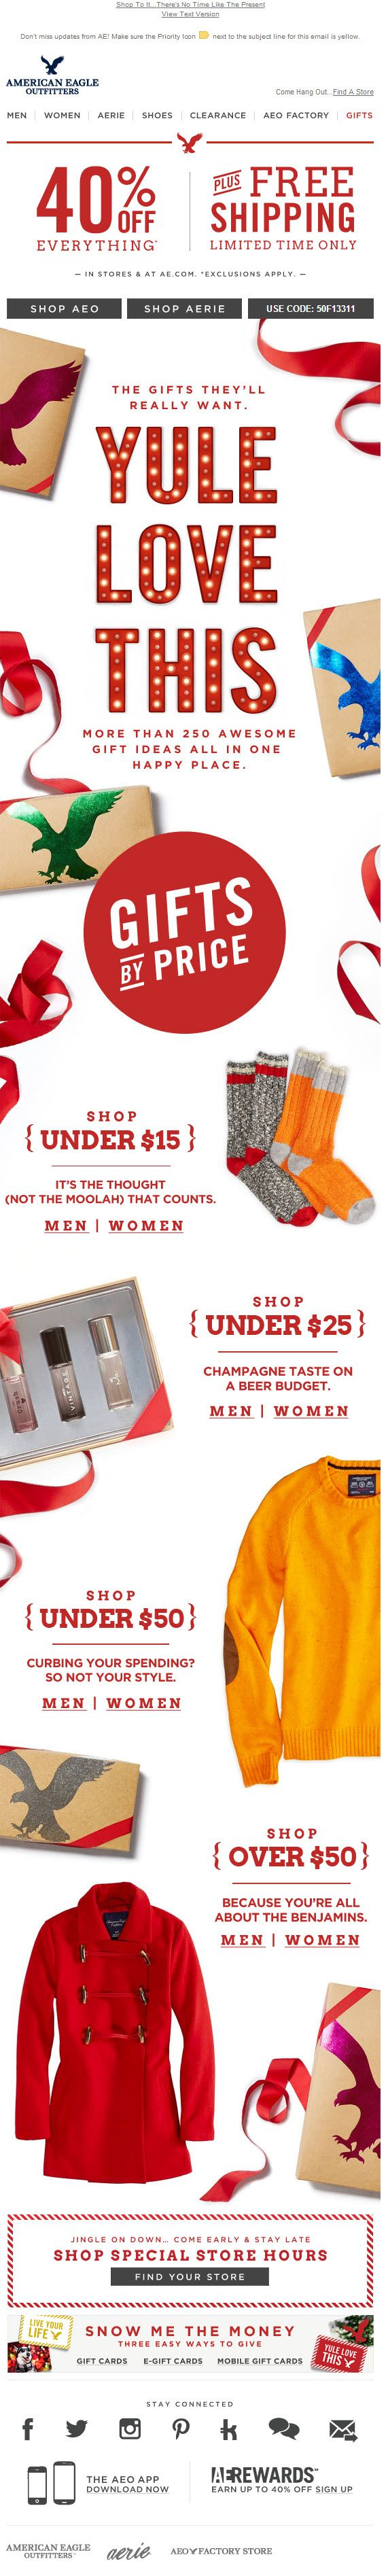 Sent: 11/26/13 SL: 'Give It Up! 40% Off, Free Shipping & 100s Of Gift Ideas' Gift by price email from American Eagle